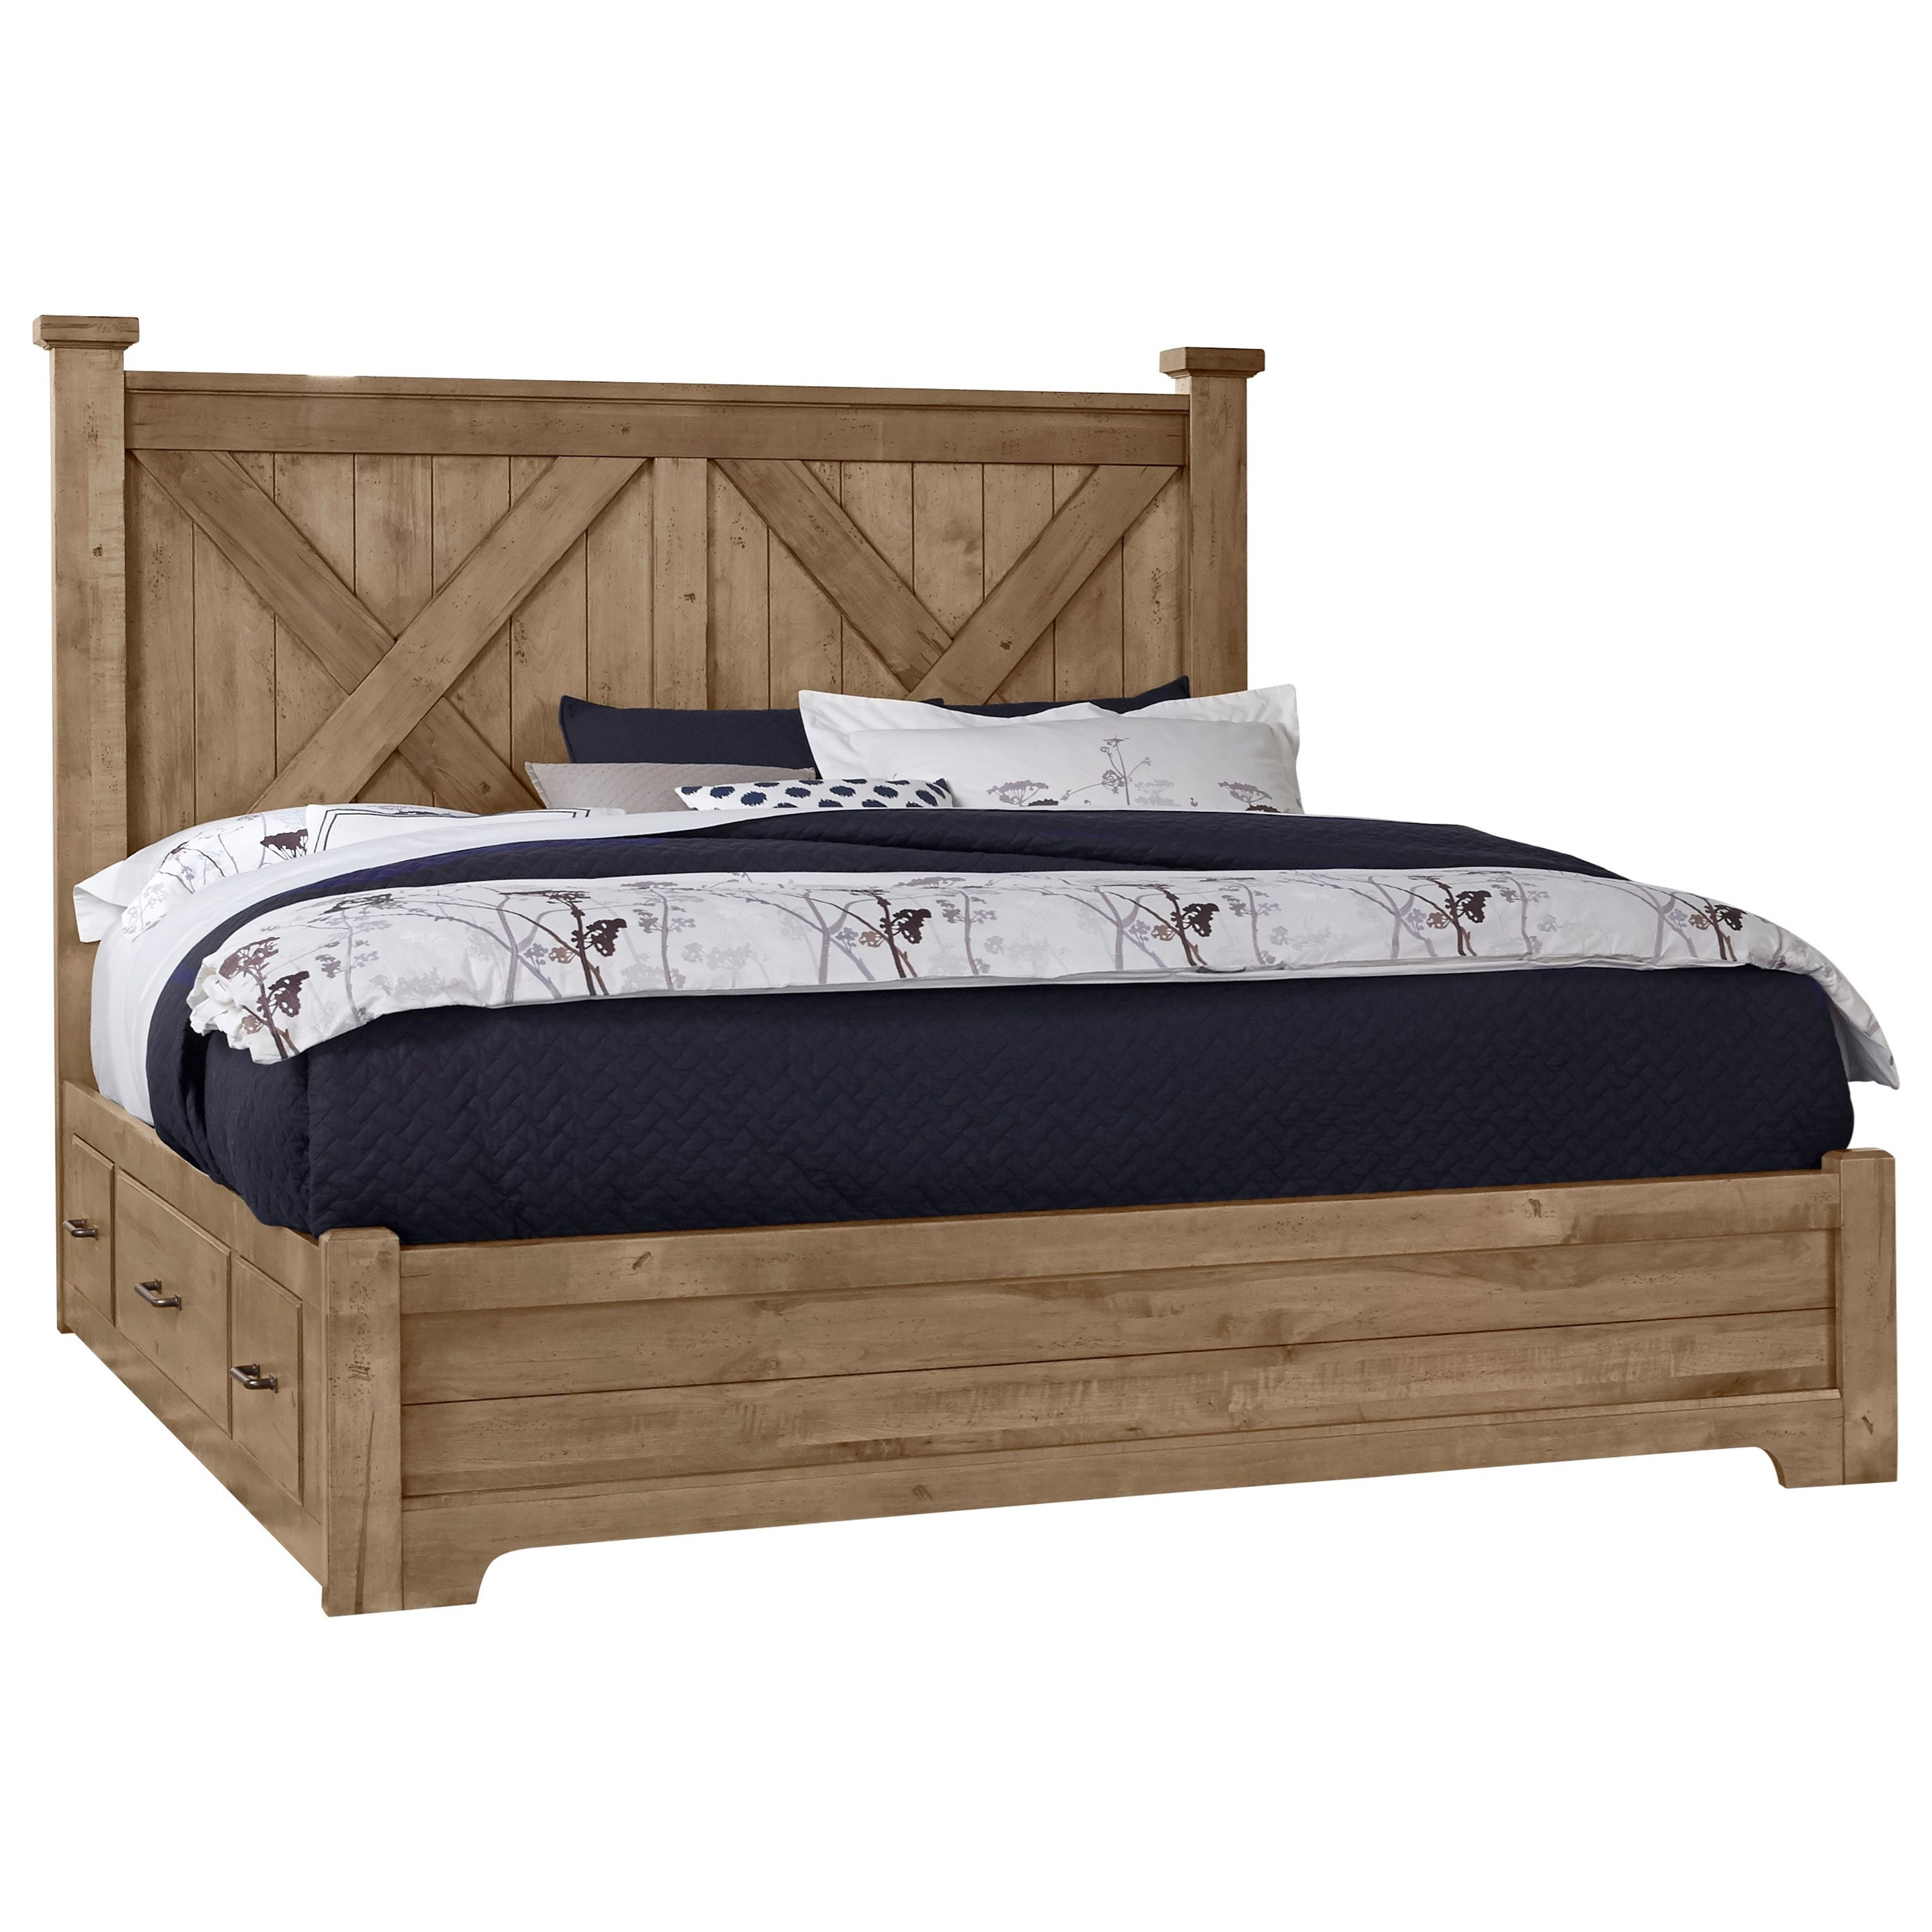 Cool Rustic King X Bed with Side Storage by Artisan & Post at Northeast Factory Direct